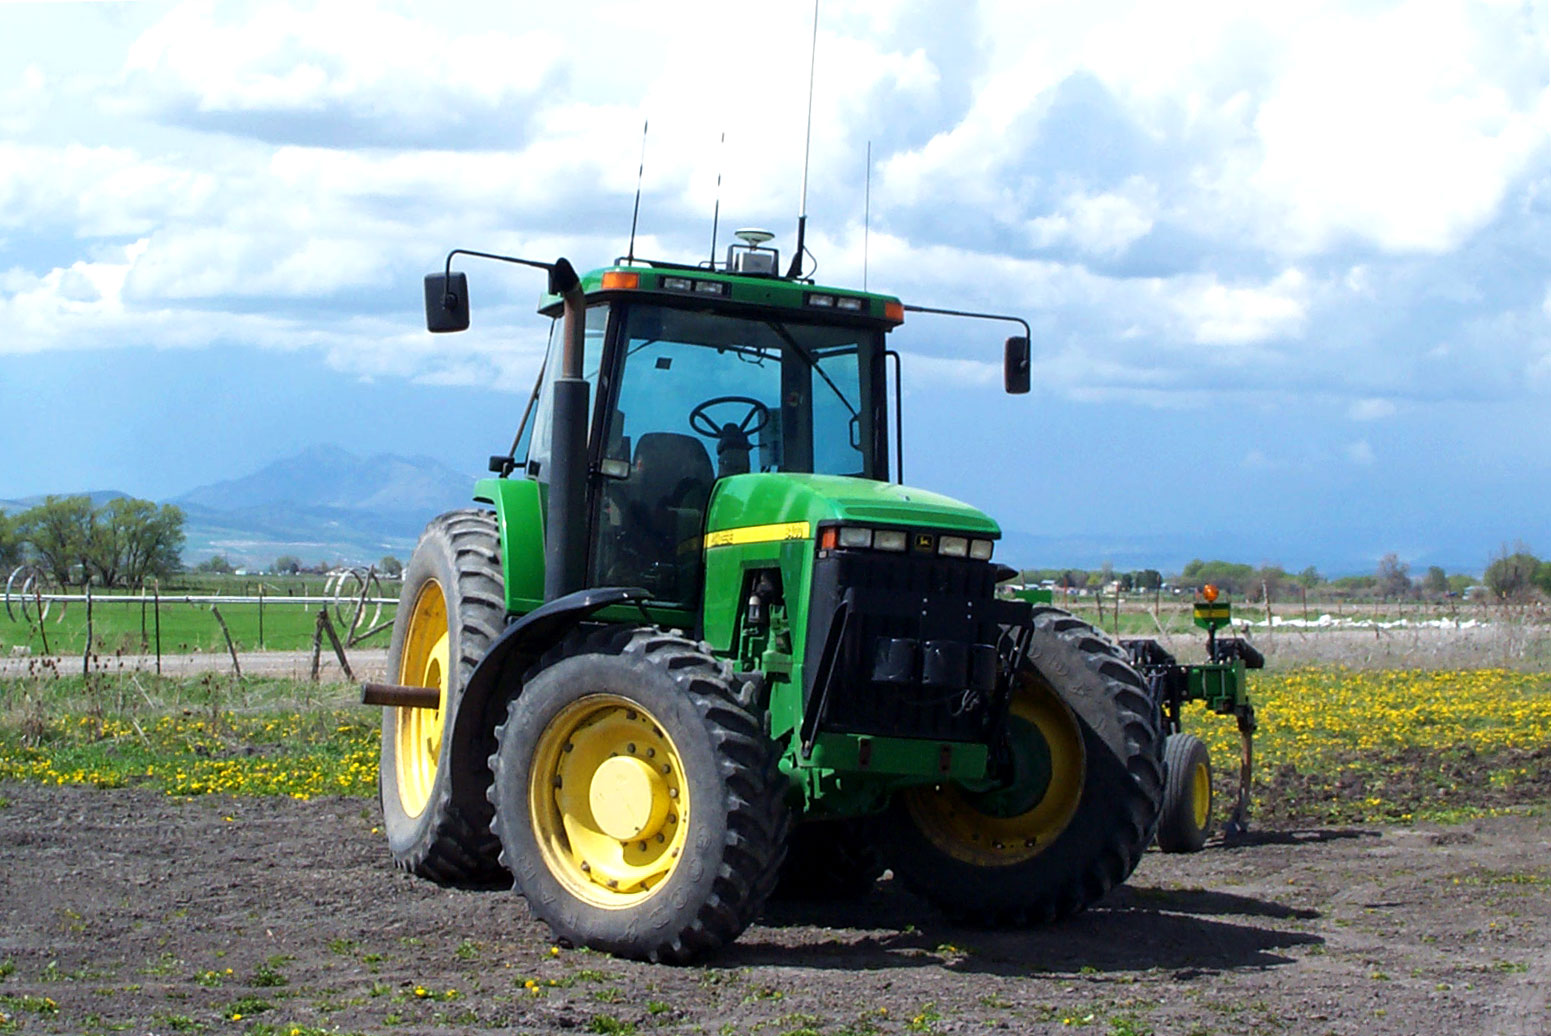 ASI started with John Deere in 2000